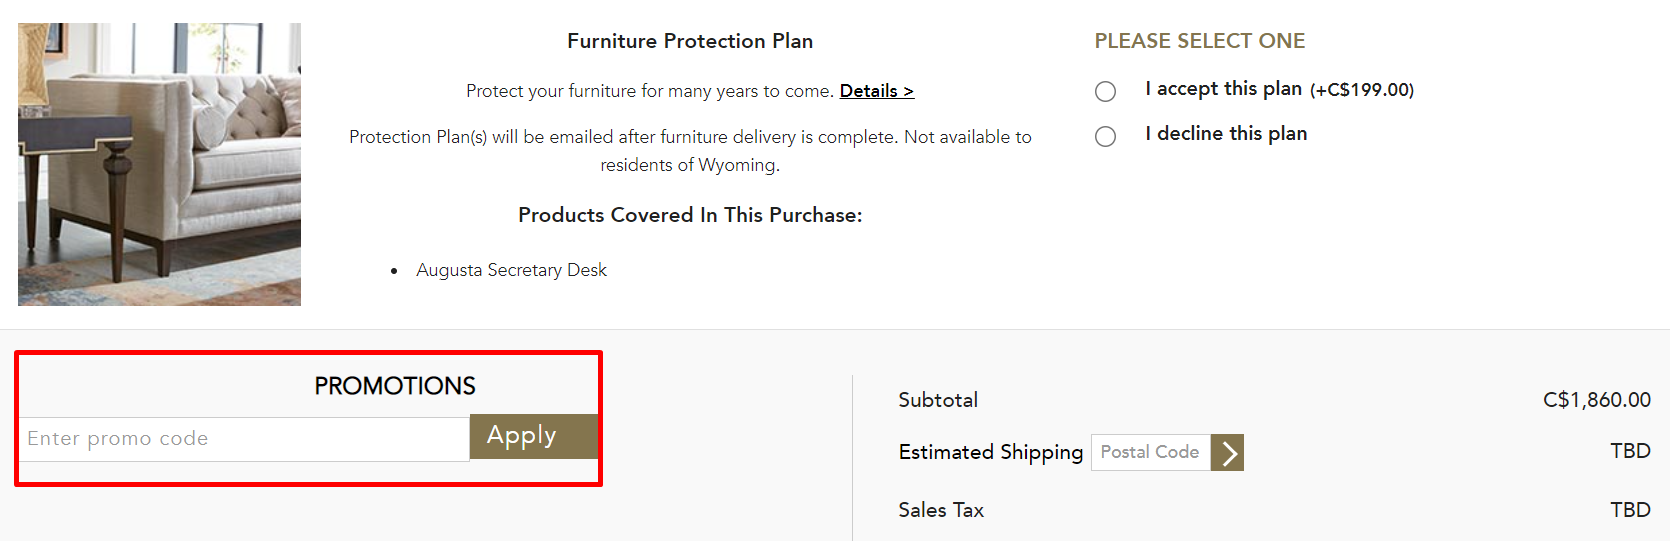 How do I use my Ethan Allen promotion code?